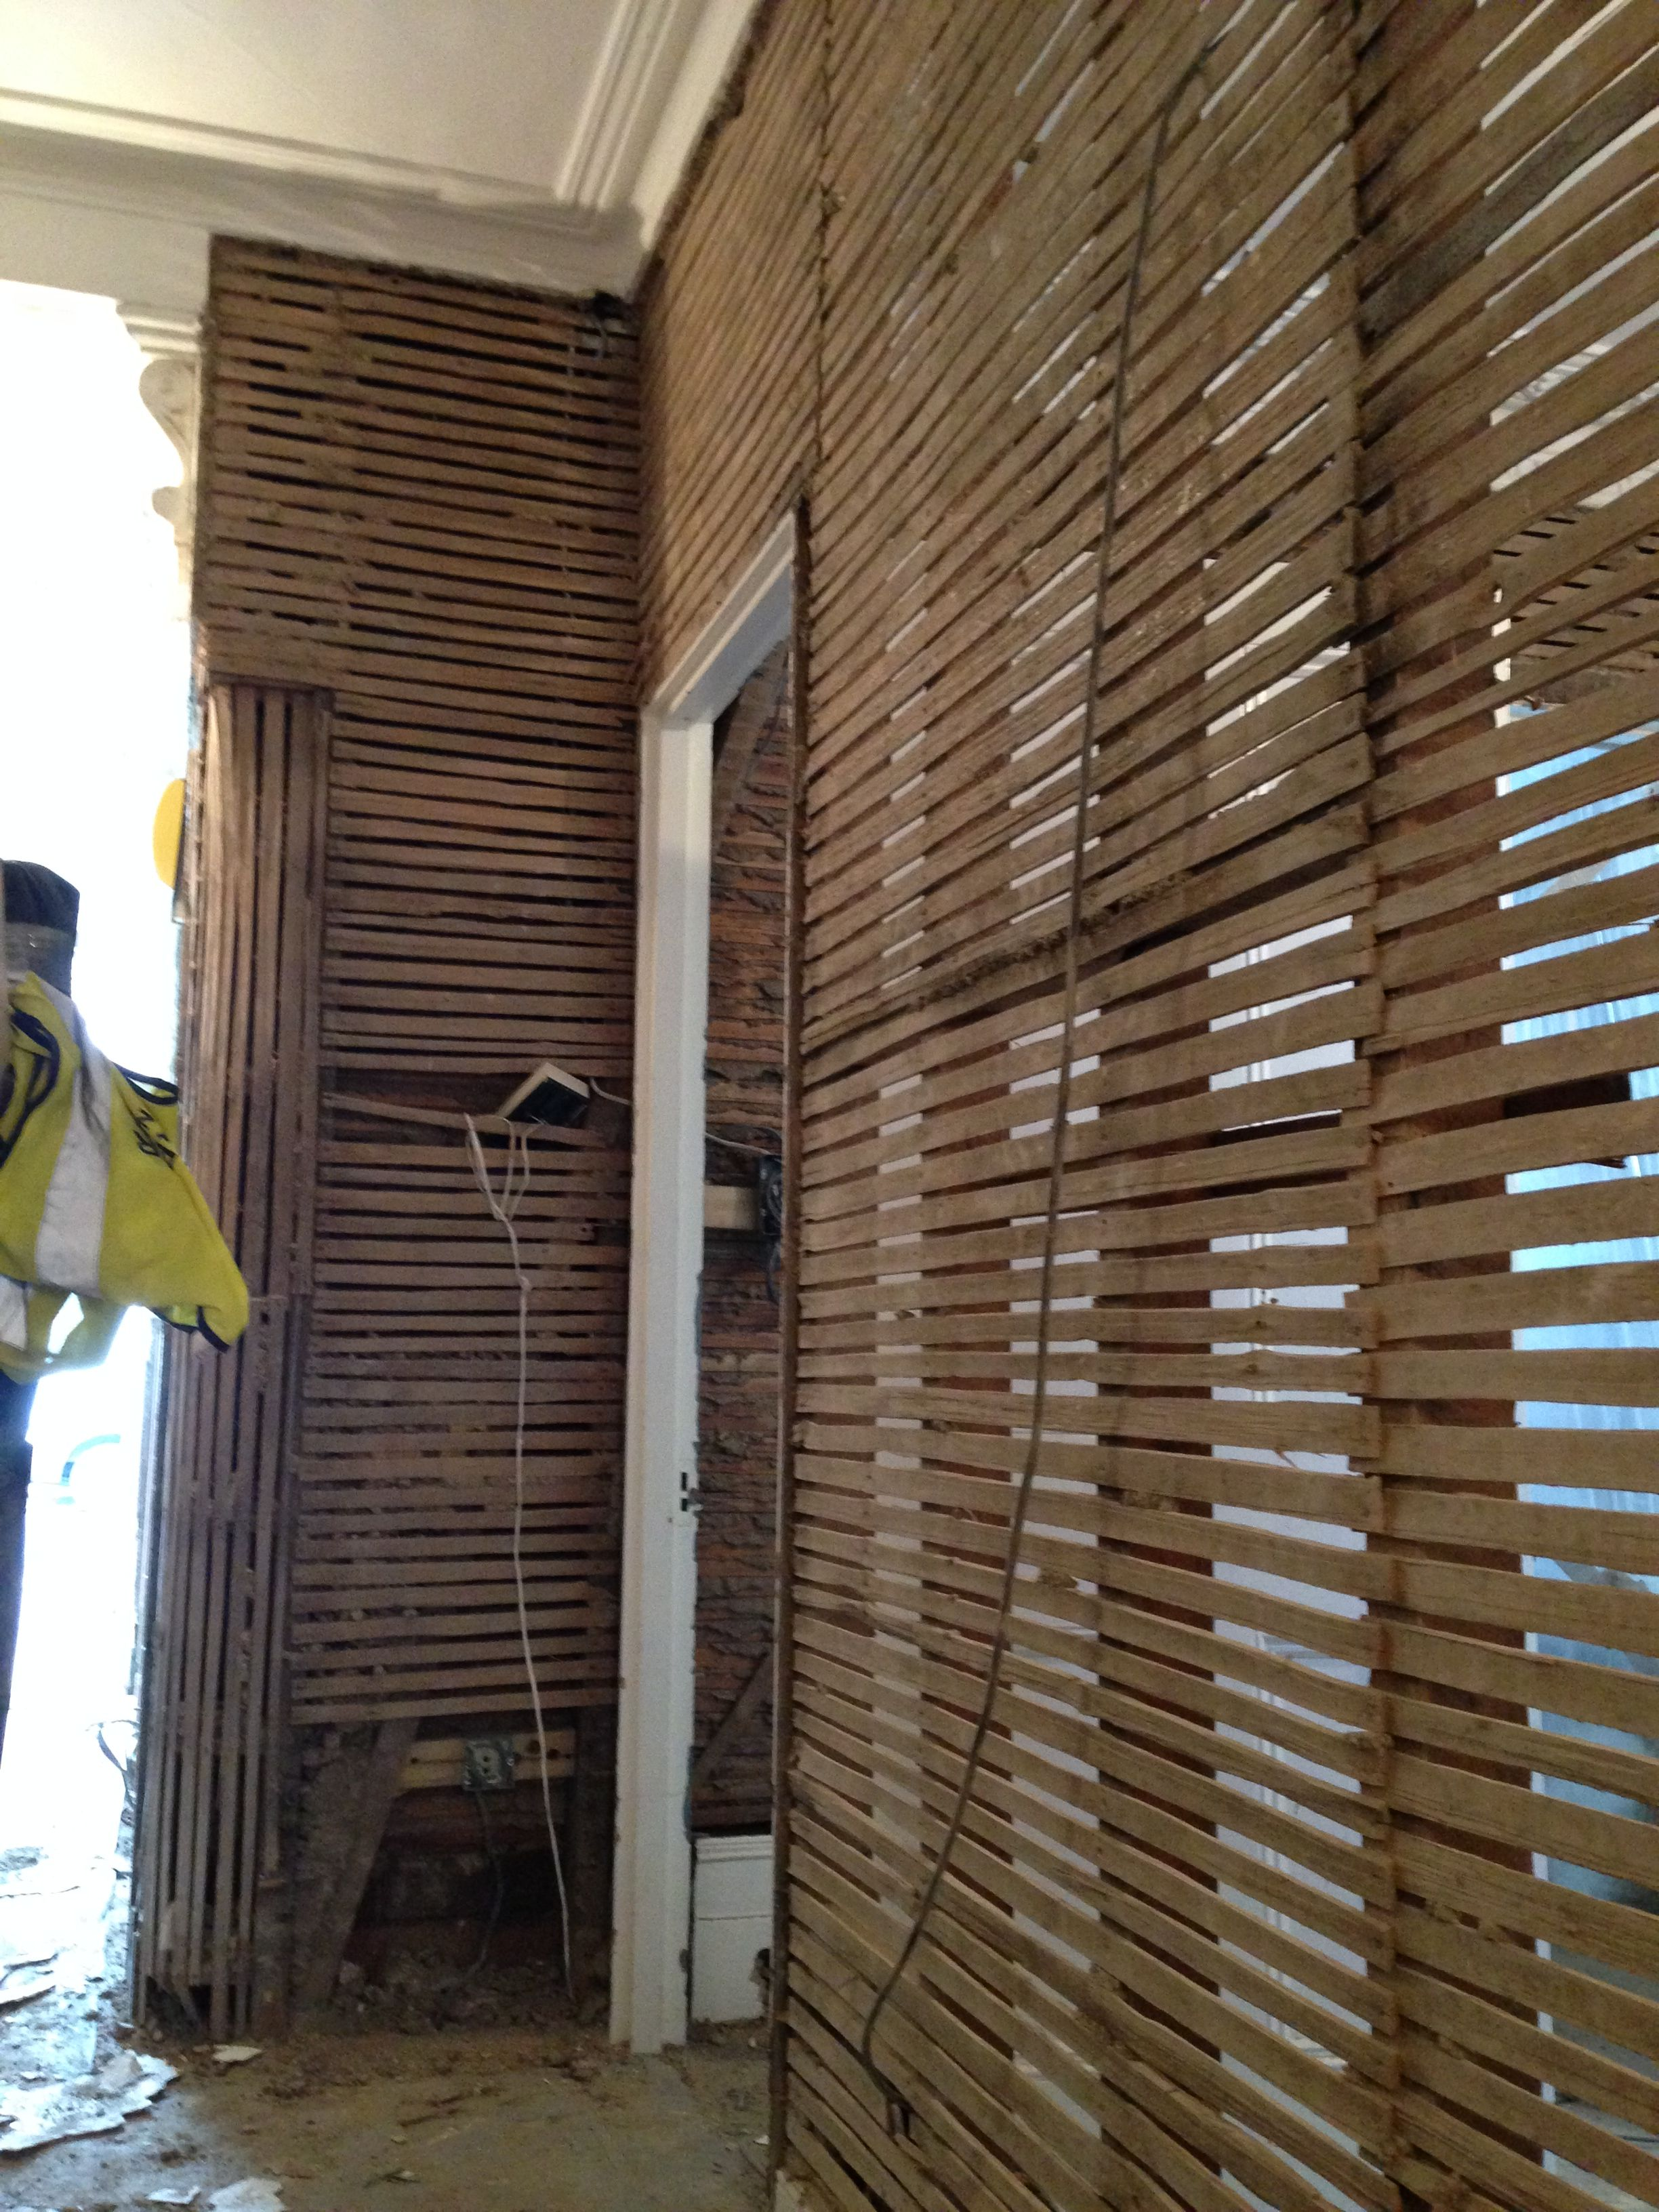 Popular Plaster Ceiling Repair Lath La Plaster R Value Plaster Uncovered Woodrow Architects Construction Sites Lath Plaster Uncovered La houzz-03 Lathe And Plaster